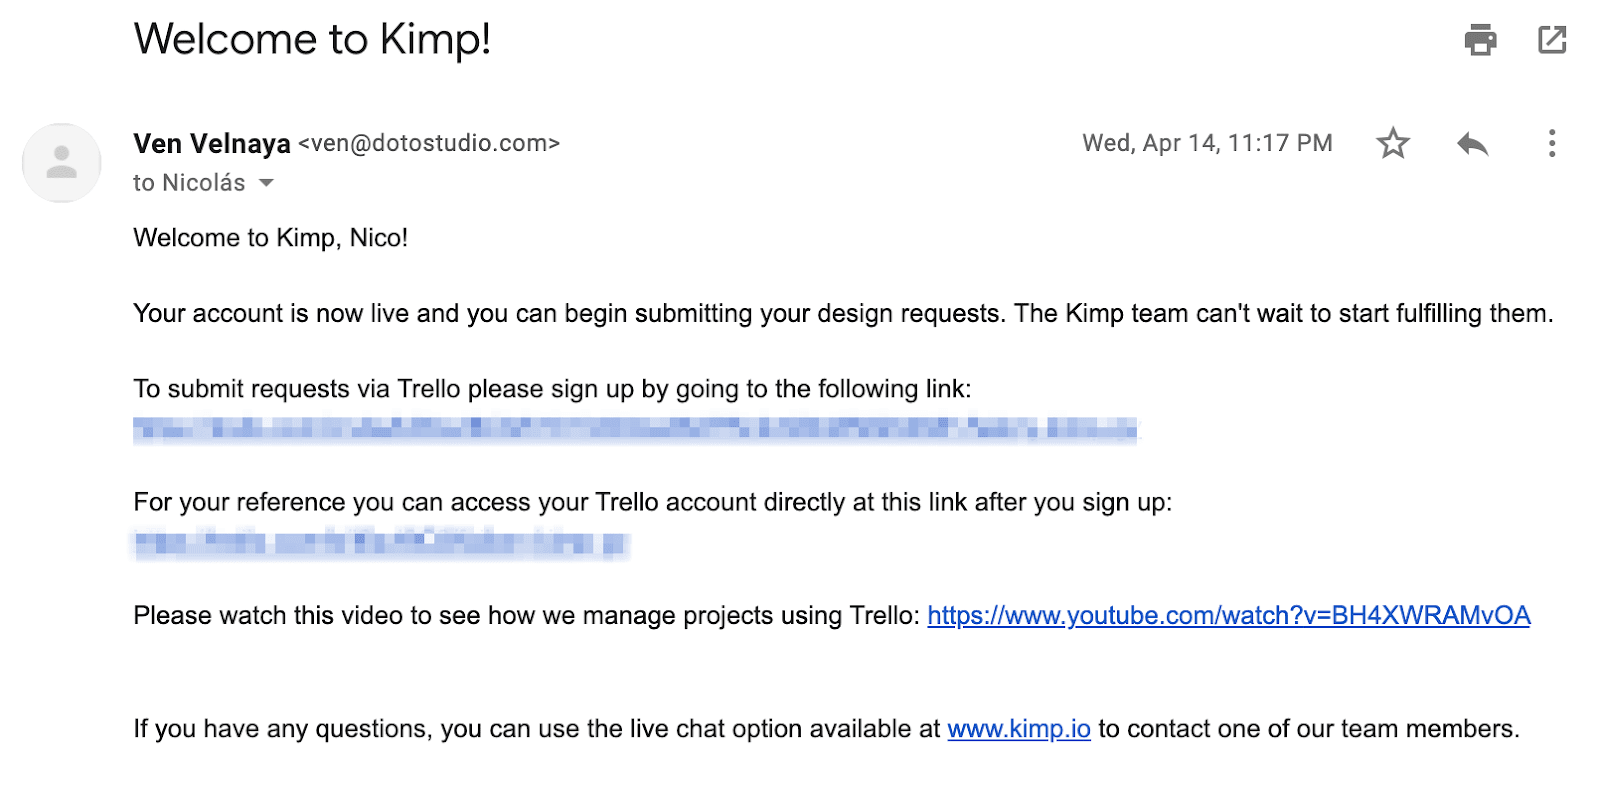 Kimp Welcome Email